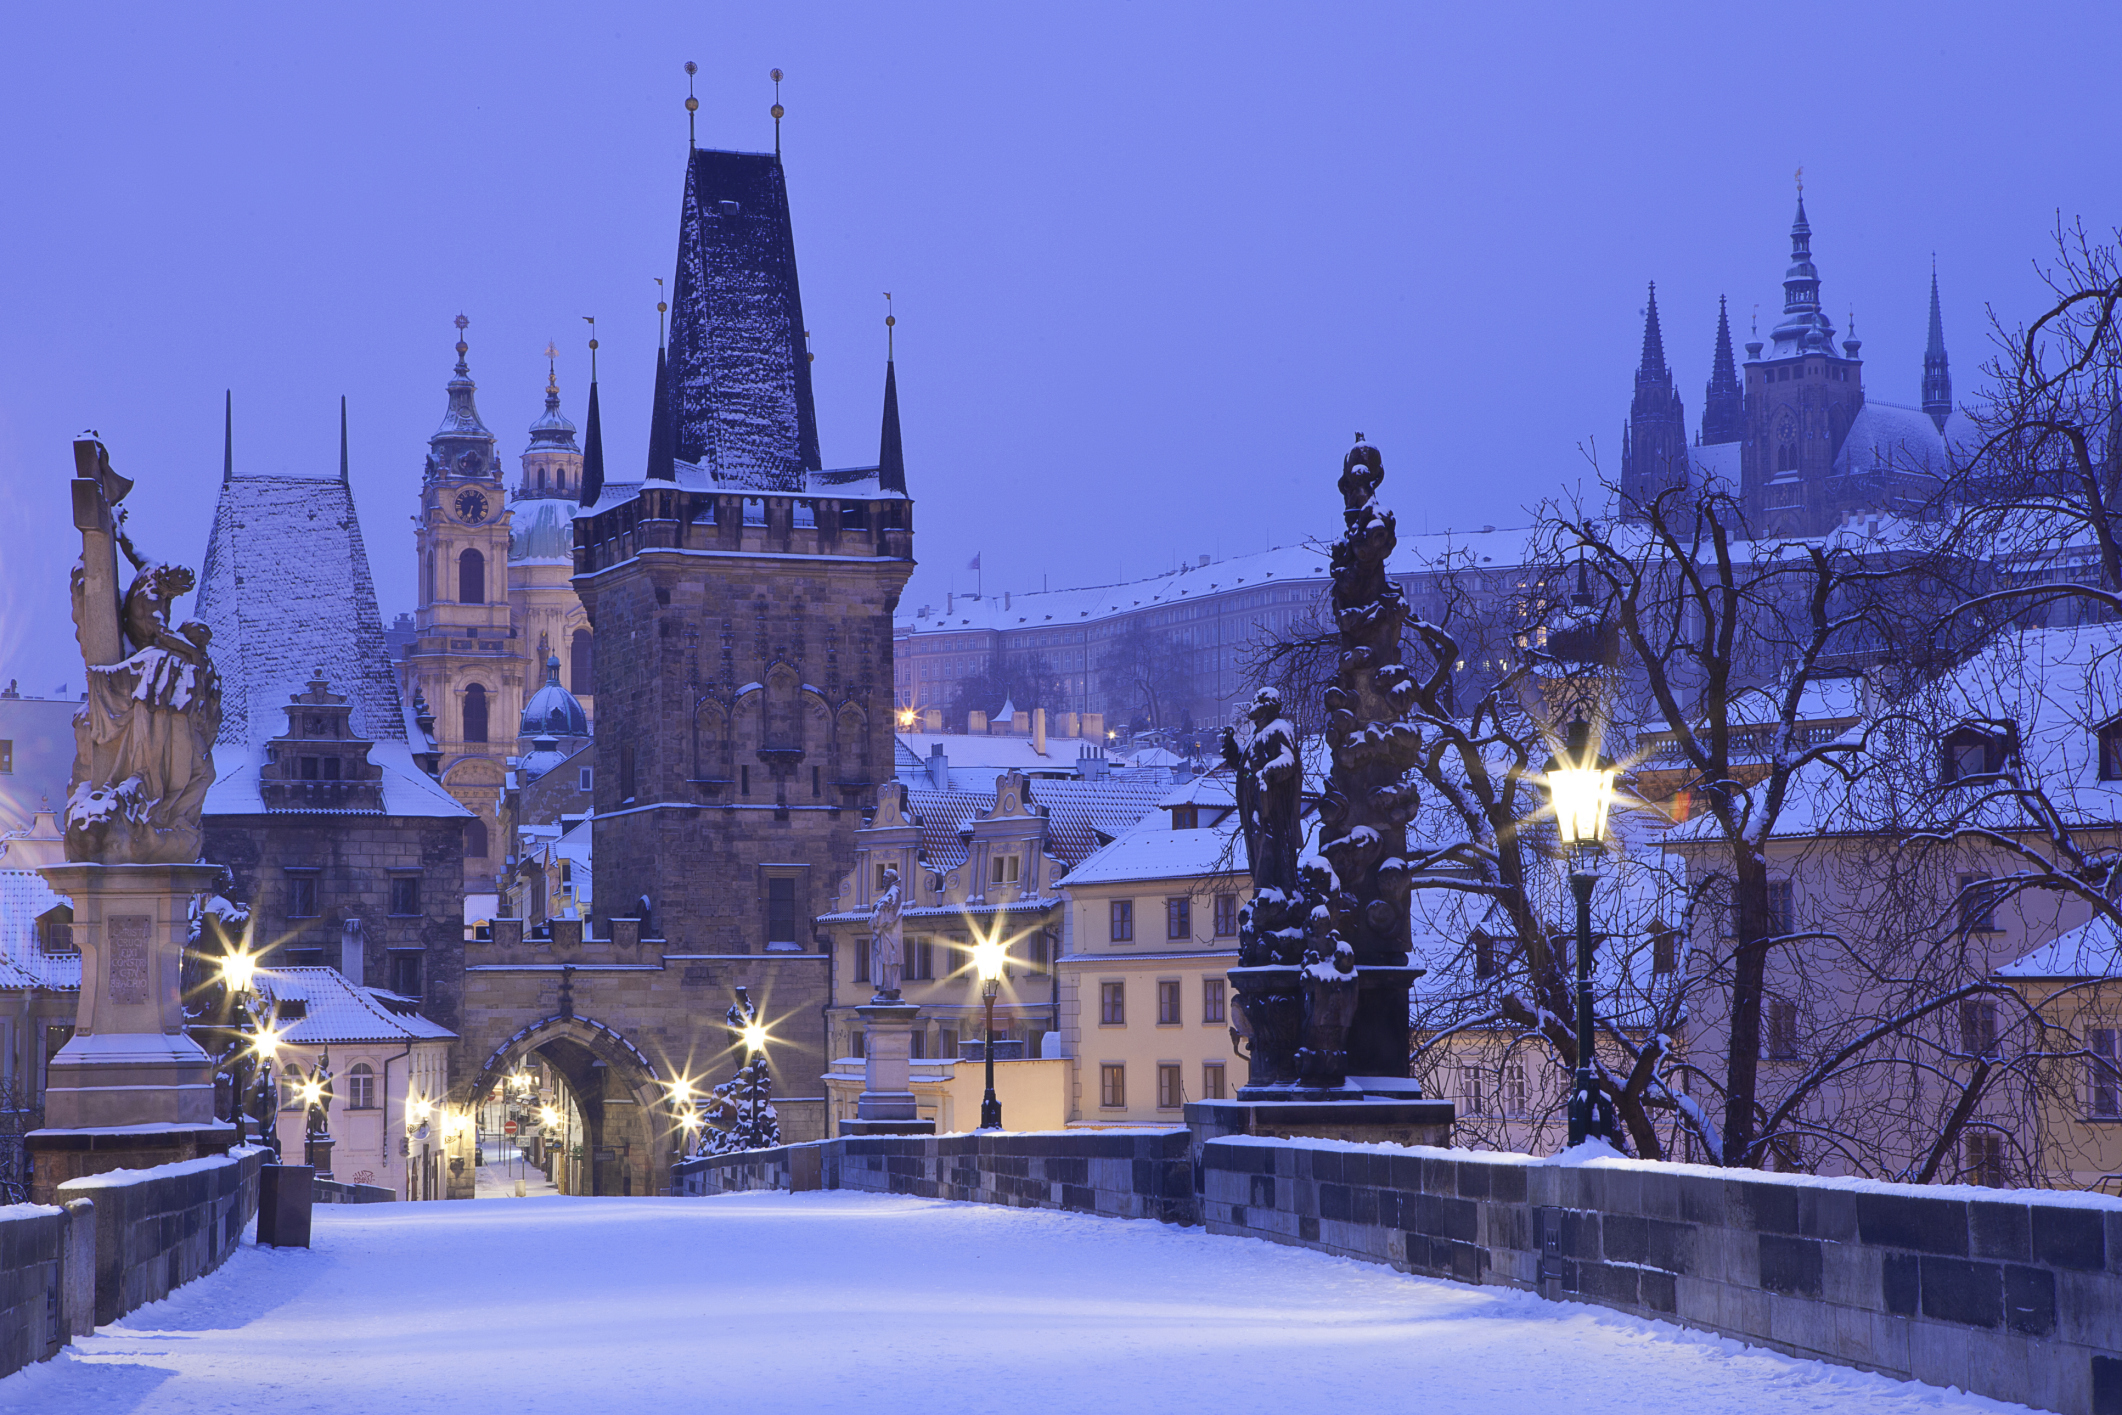 Winter Romance in the Czech Republic